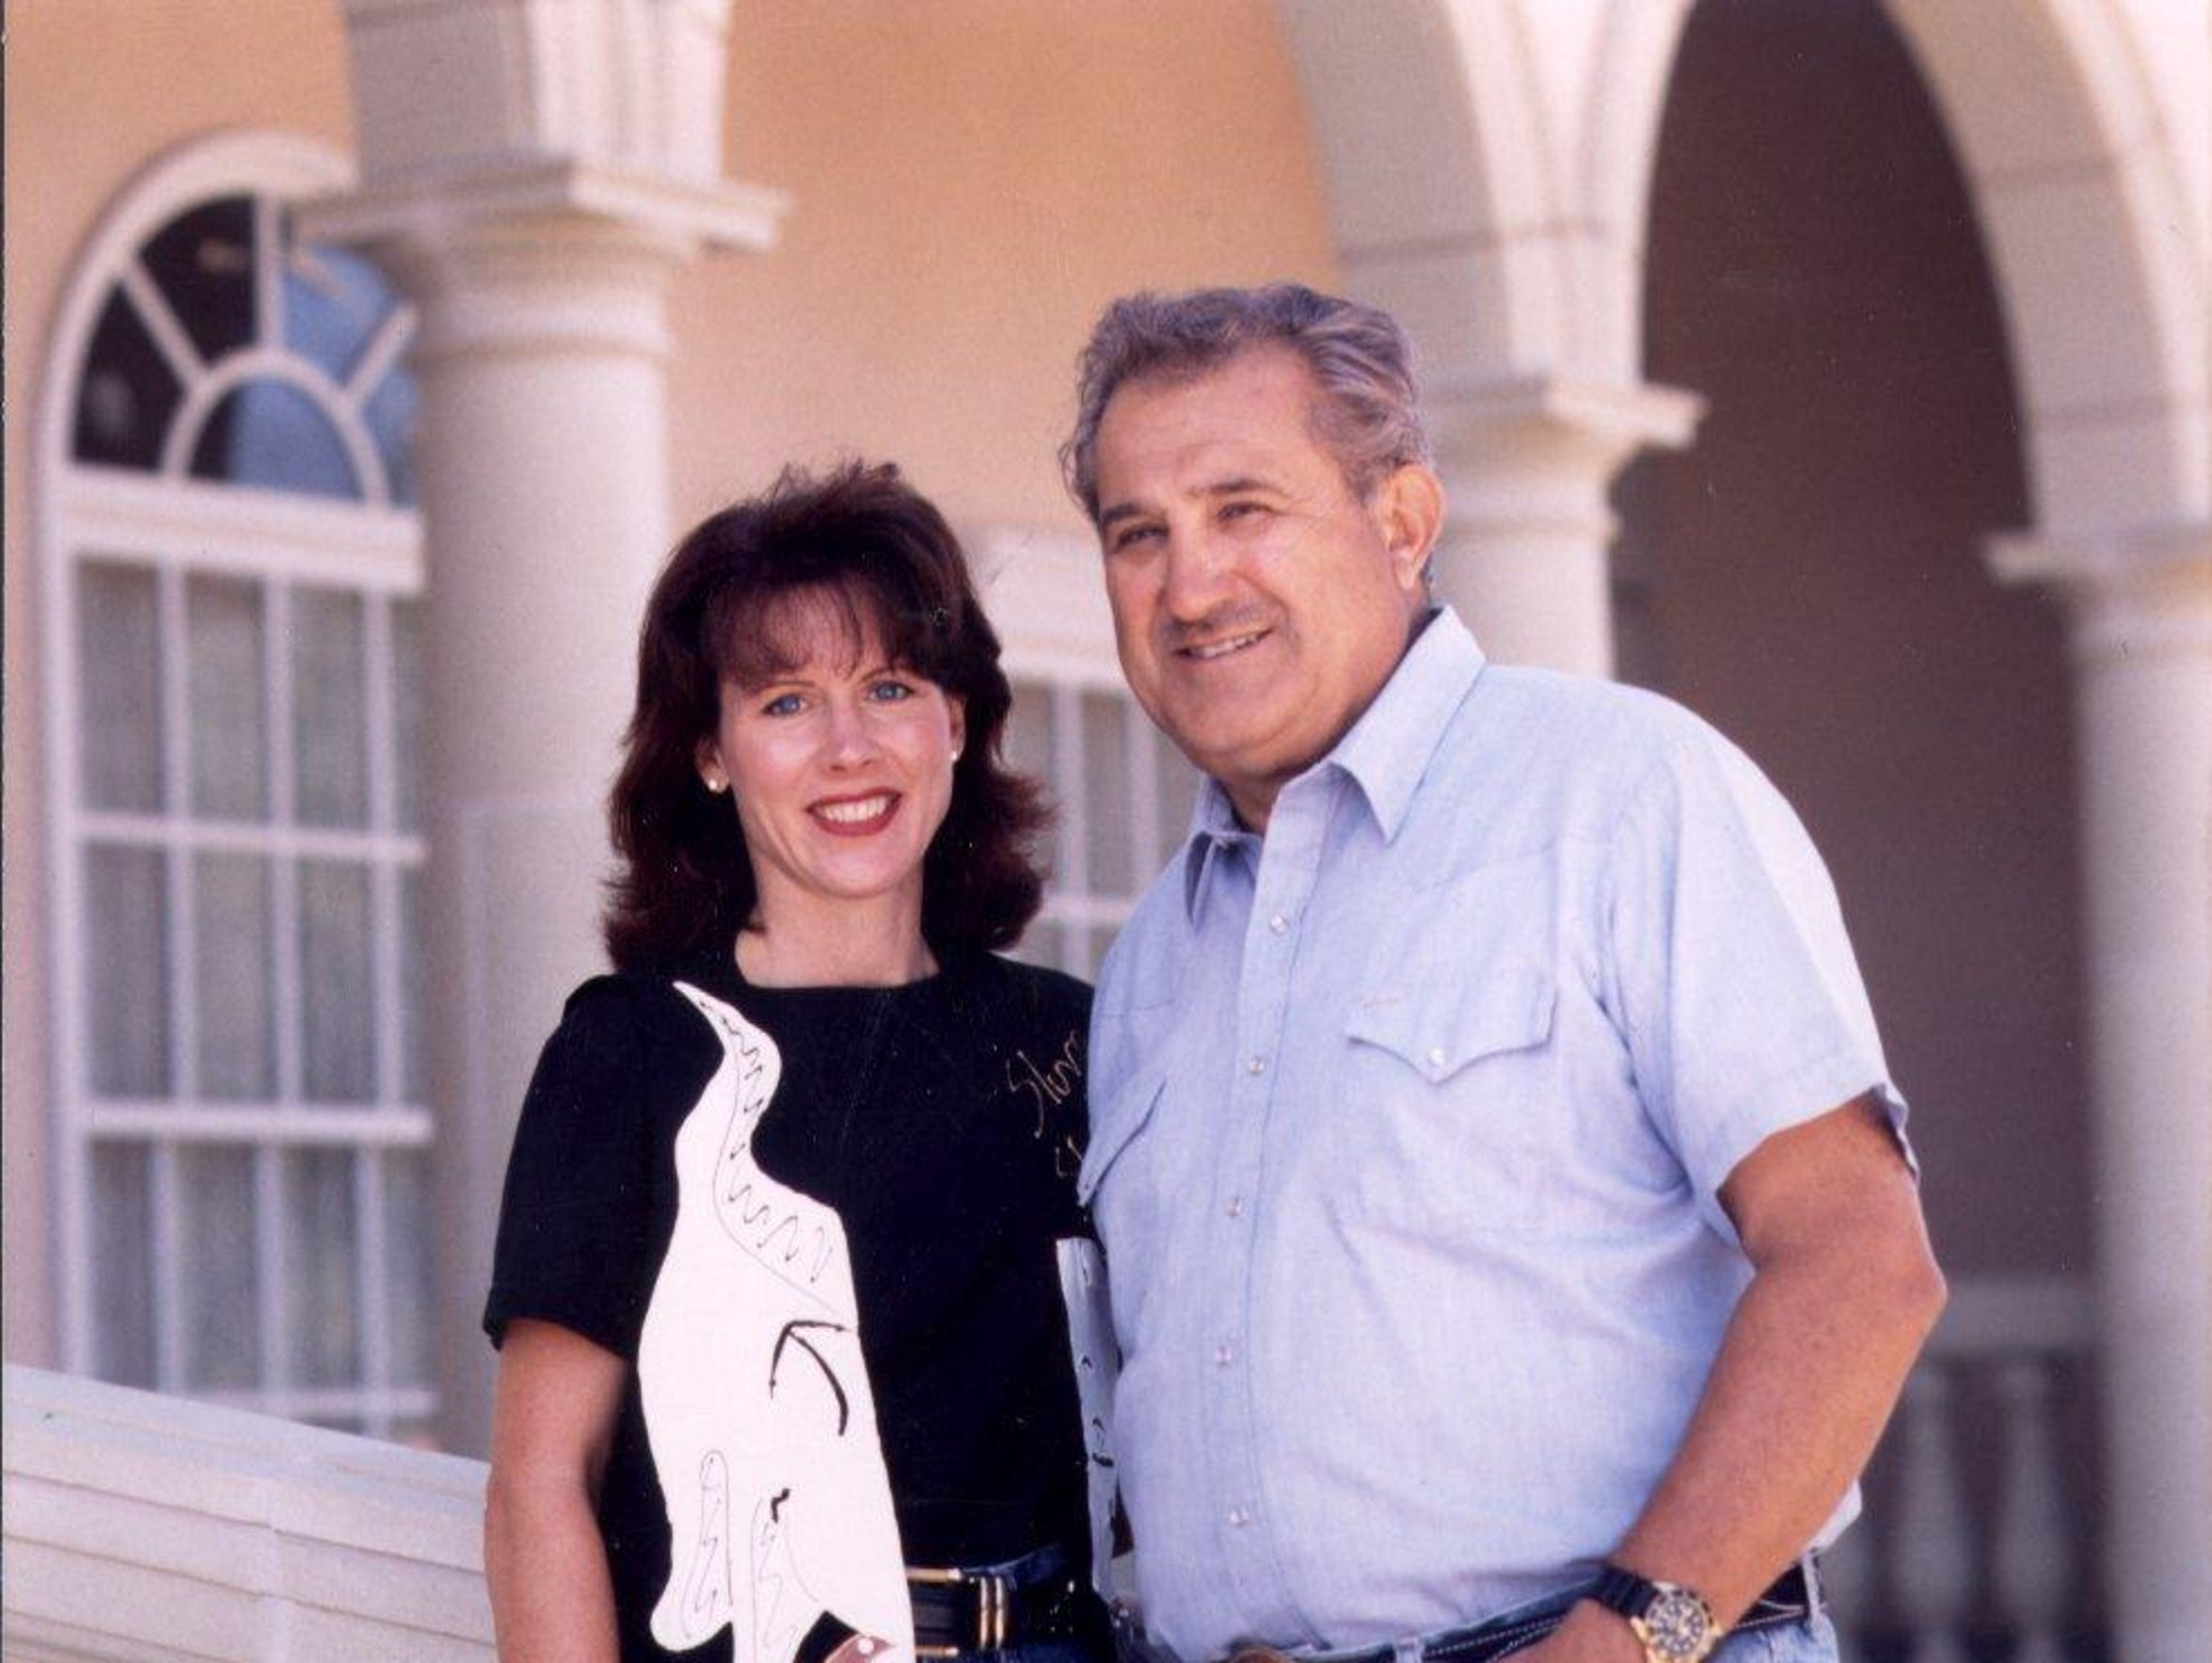 Don Carano and his wife Rhonda take a moment in the